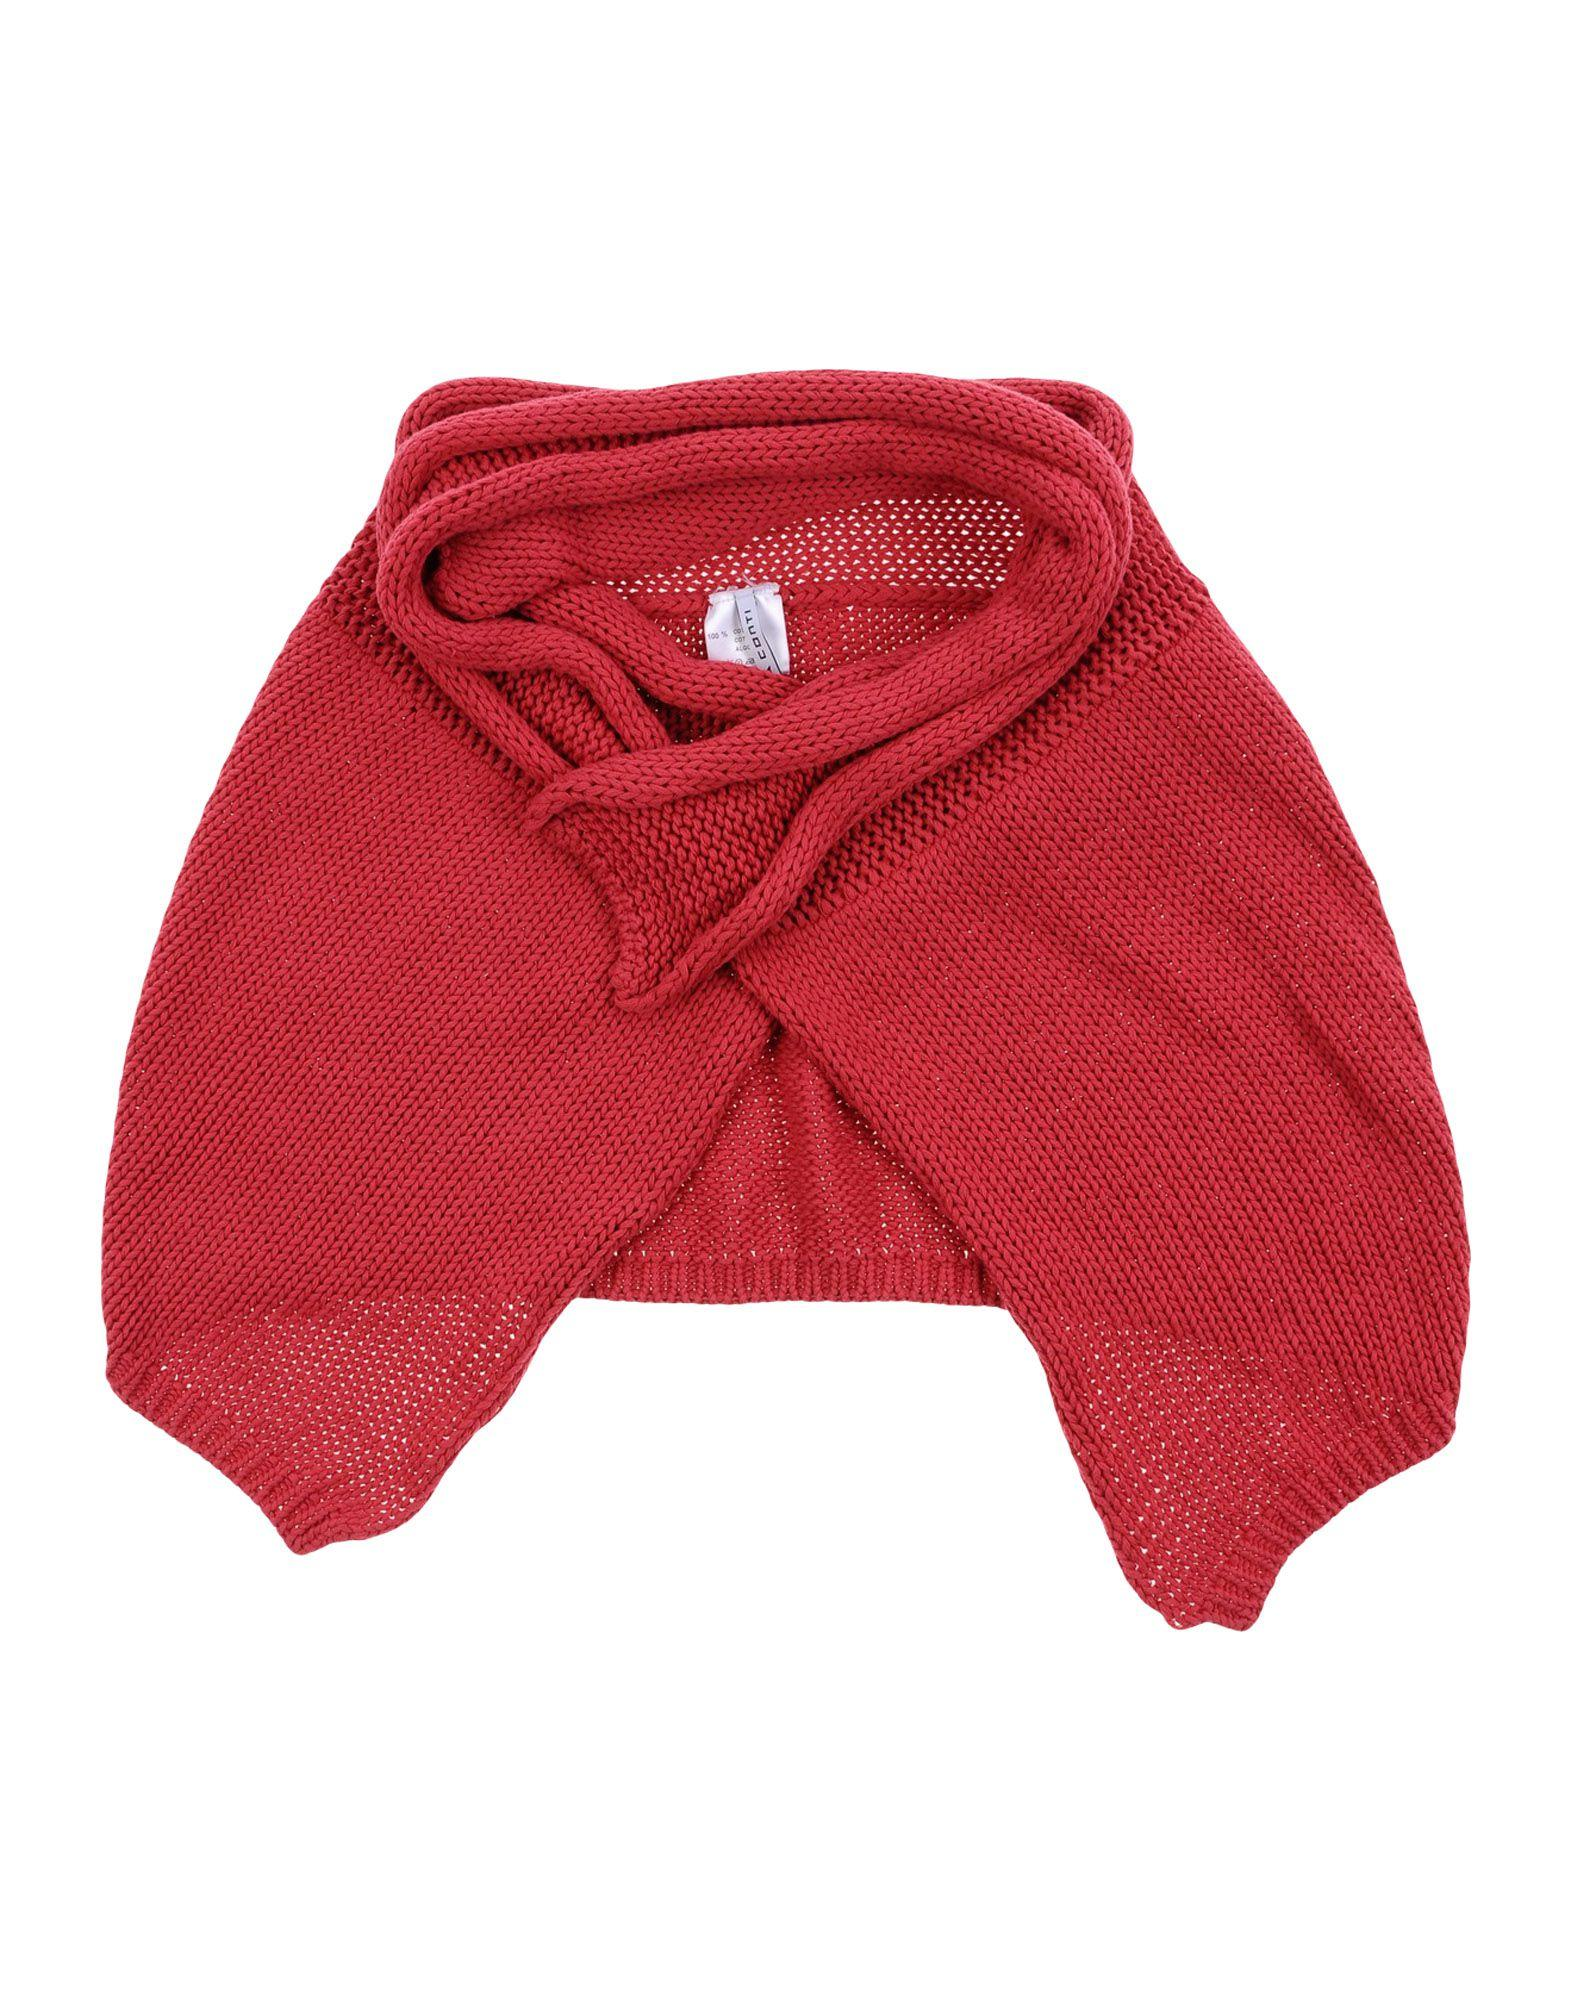 Liviana Conti Oblong Scarves In Coral